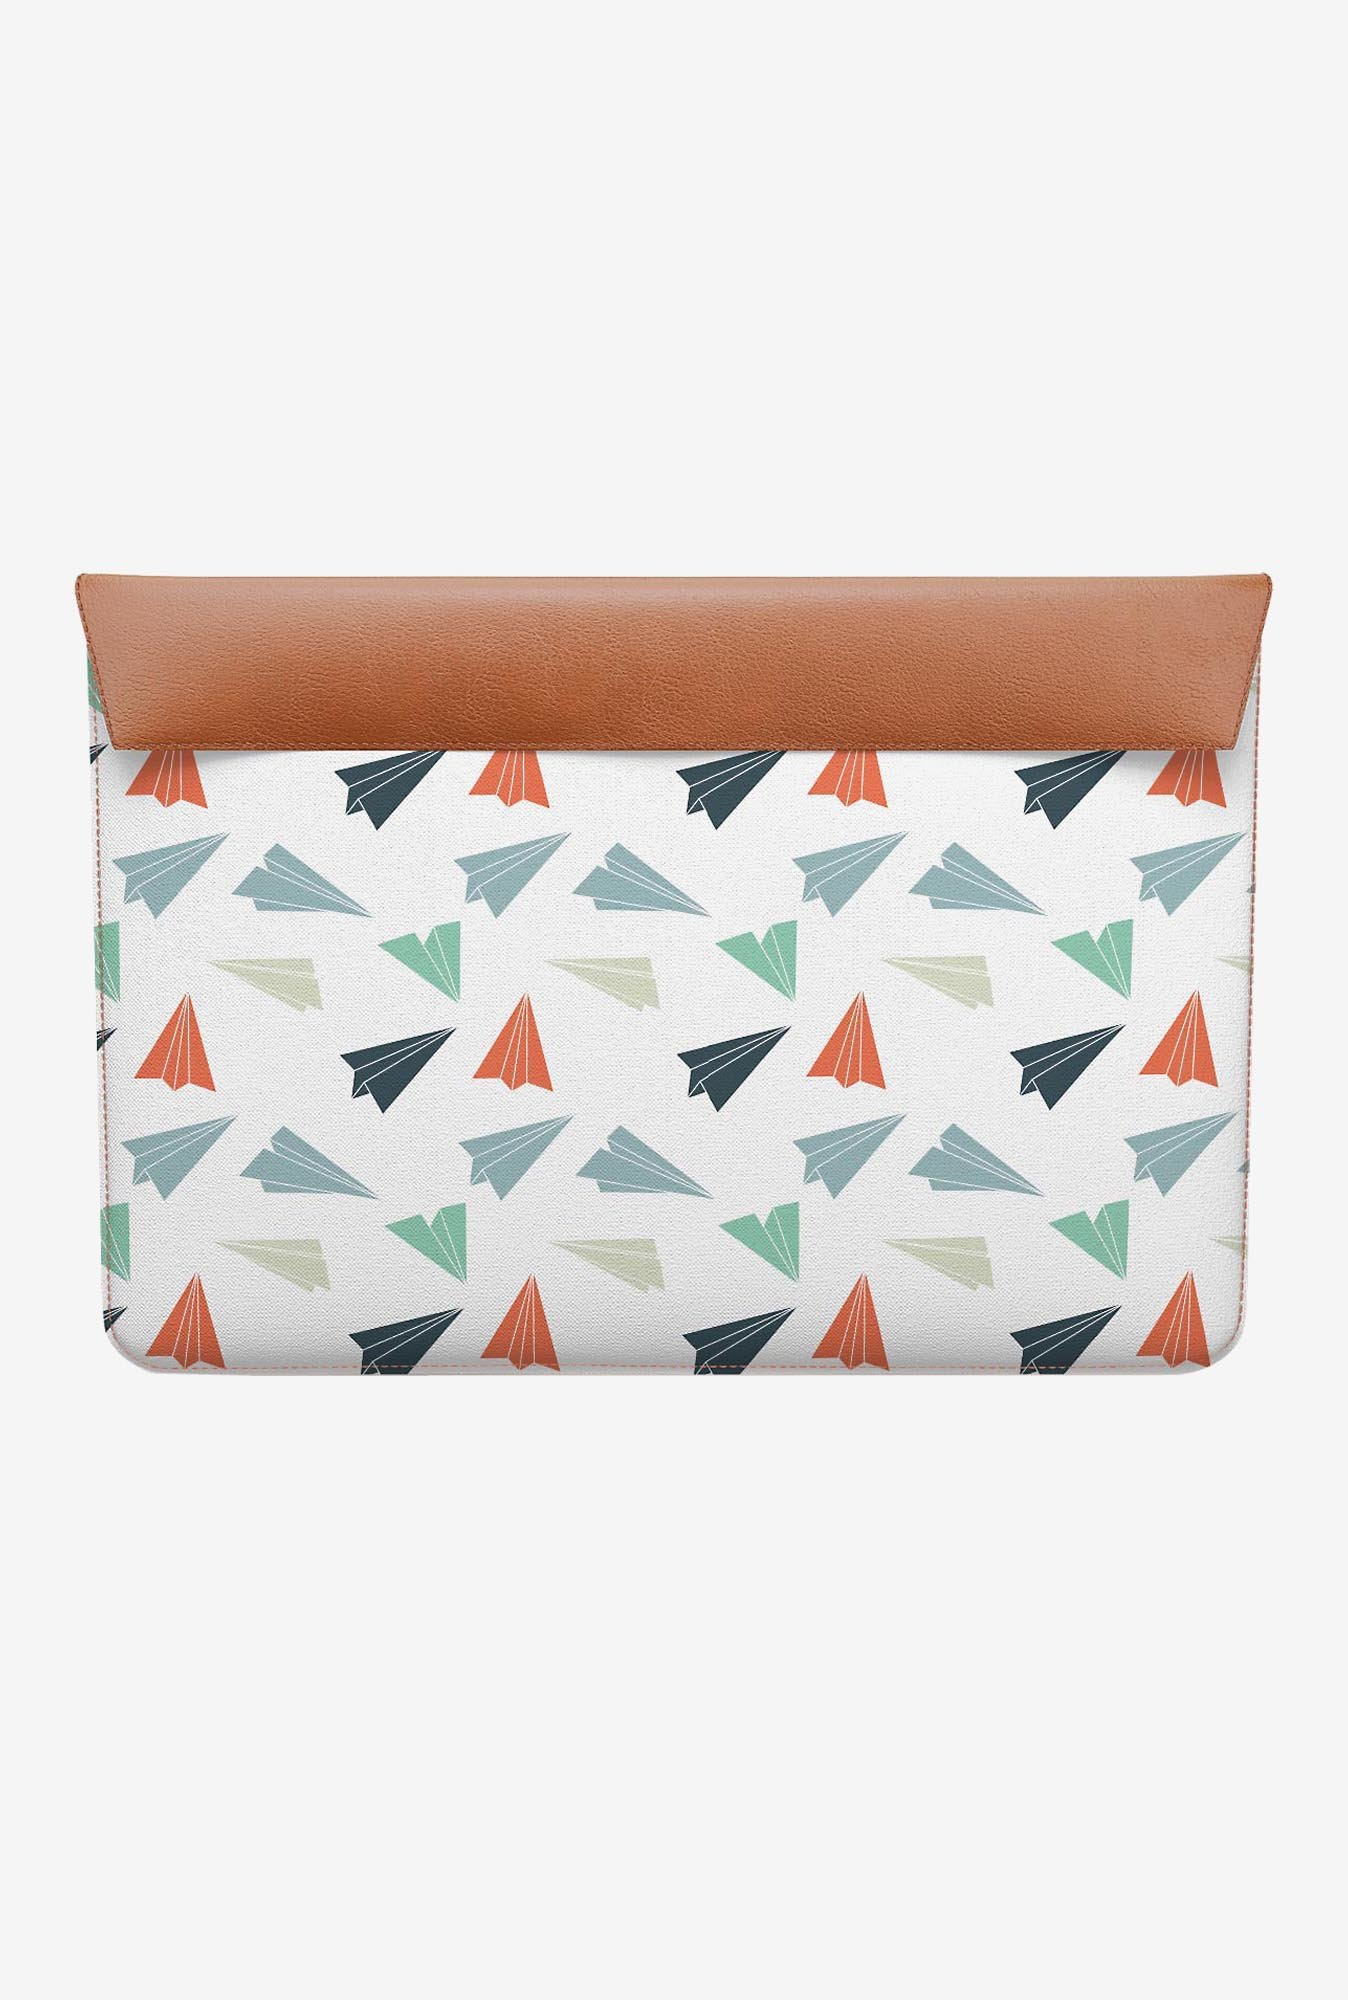 DailyObjects Paper Planes MacBook Air 11 Envelope Sleeve